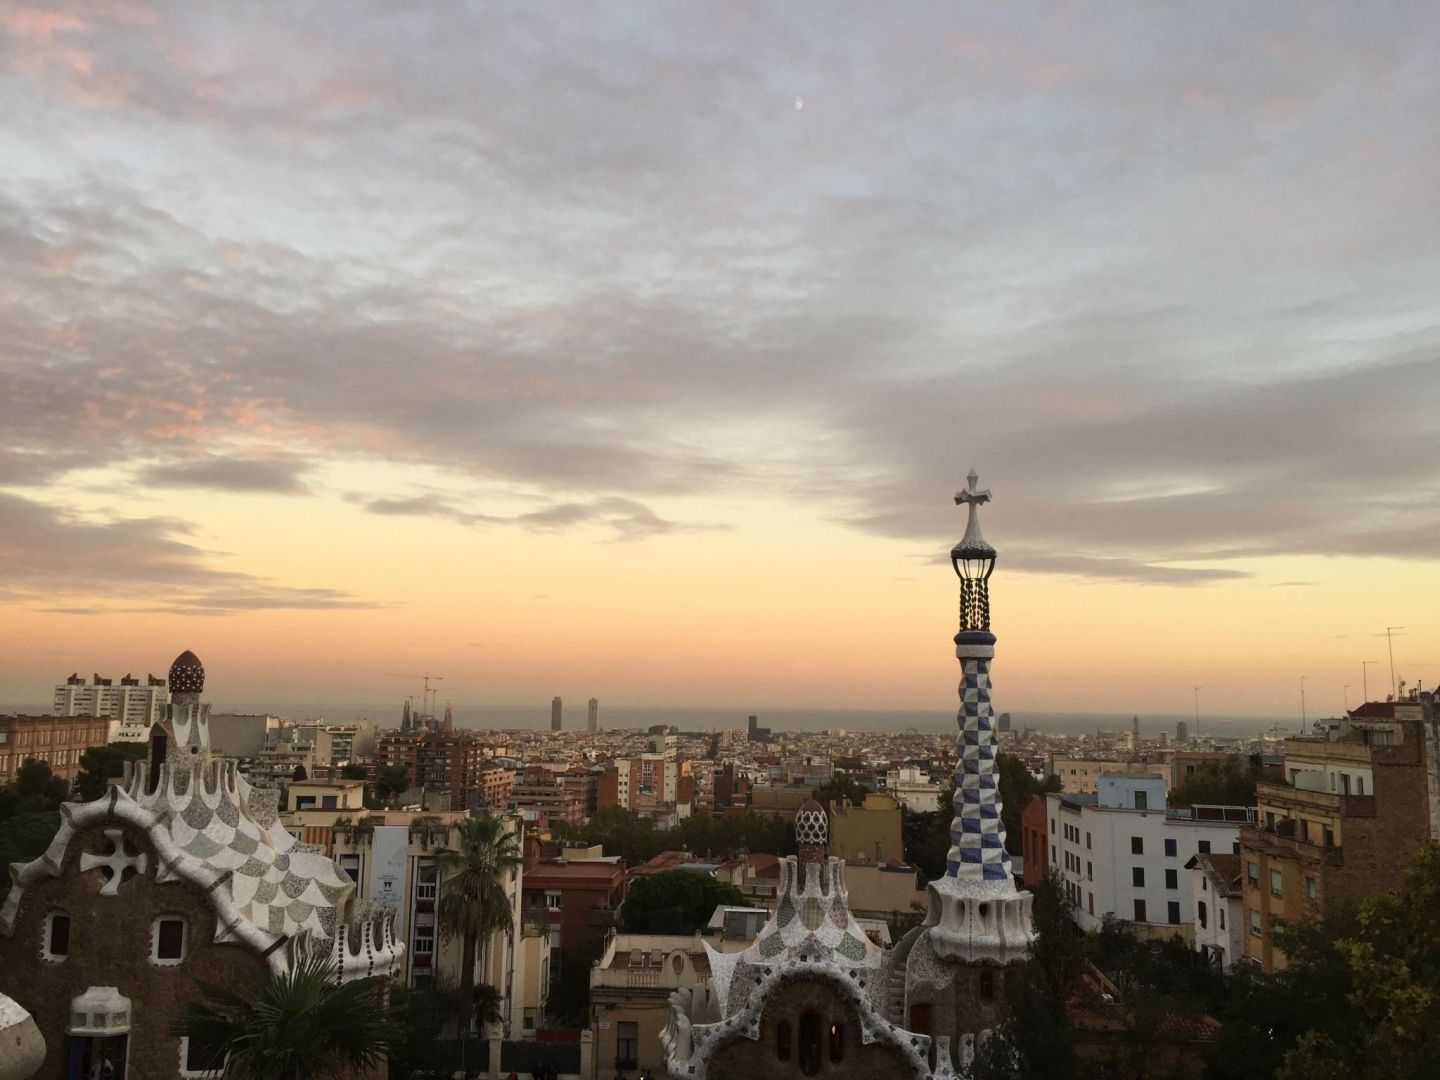 Sunset over Parc Guell, Barcelona